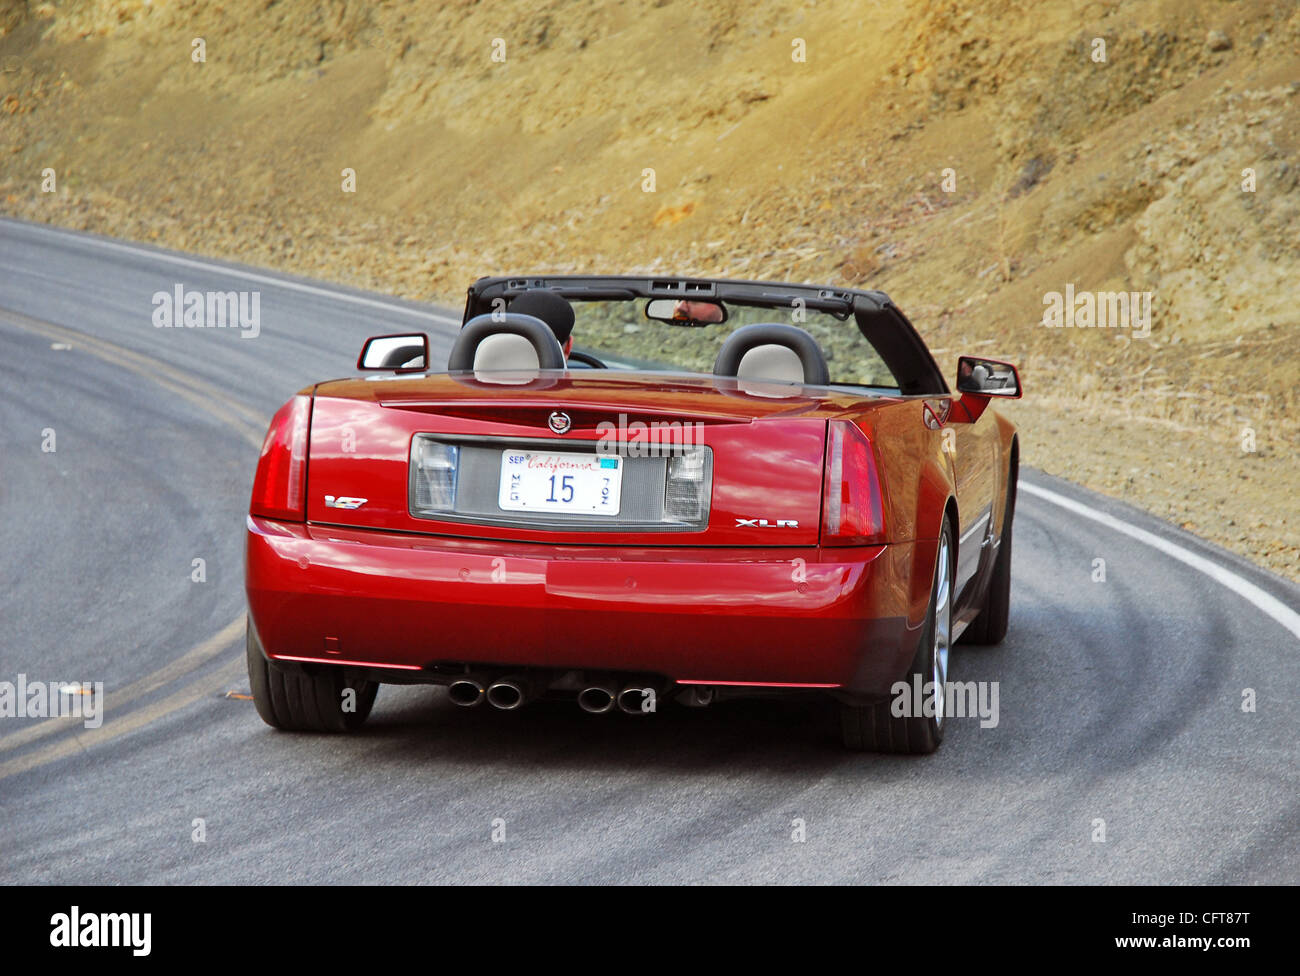 Xlr Stock Photos Images Page 3 Alamy Cadillac Wiring Diagram 2007 V Rear Action Image